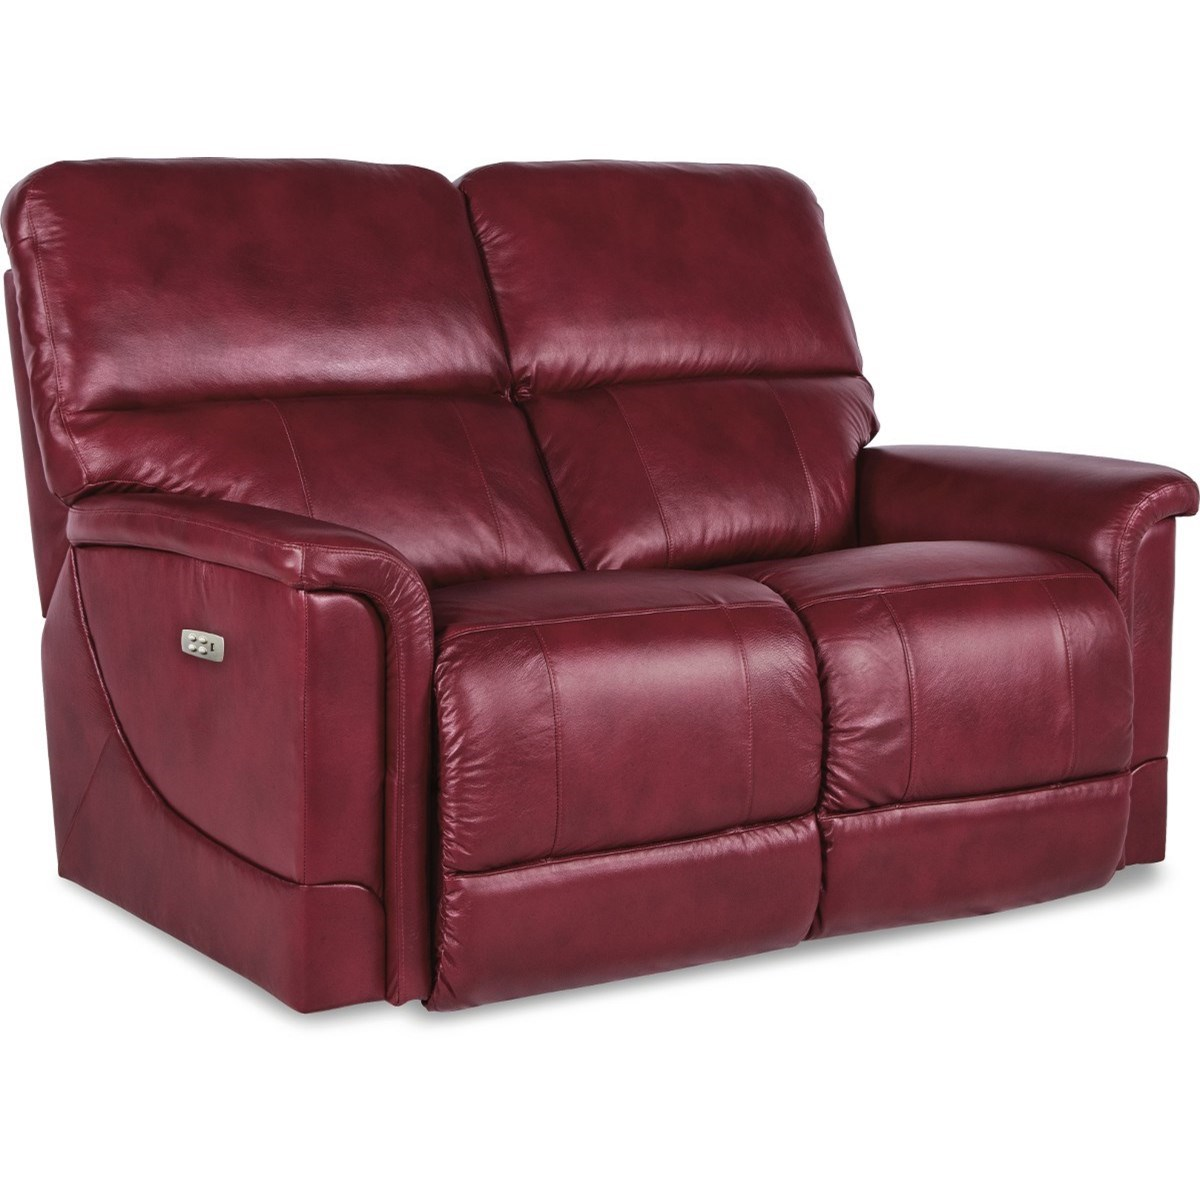 Power Reclining Loveseat with Power Headrests and USB Charging Ports